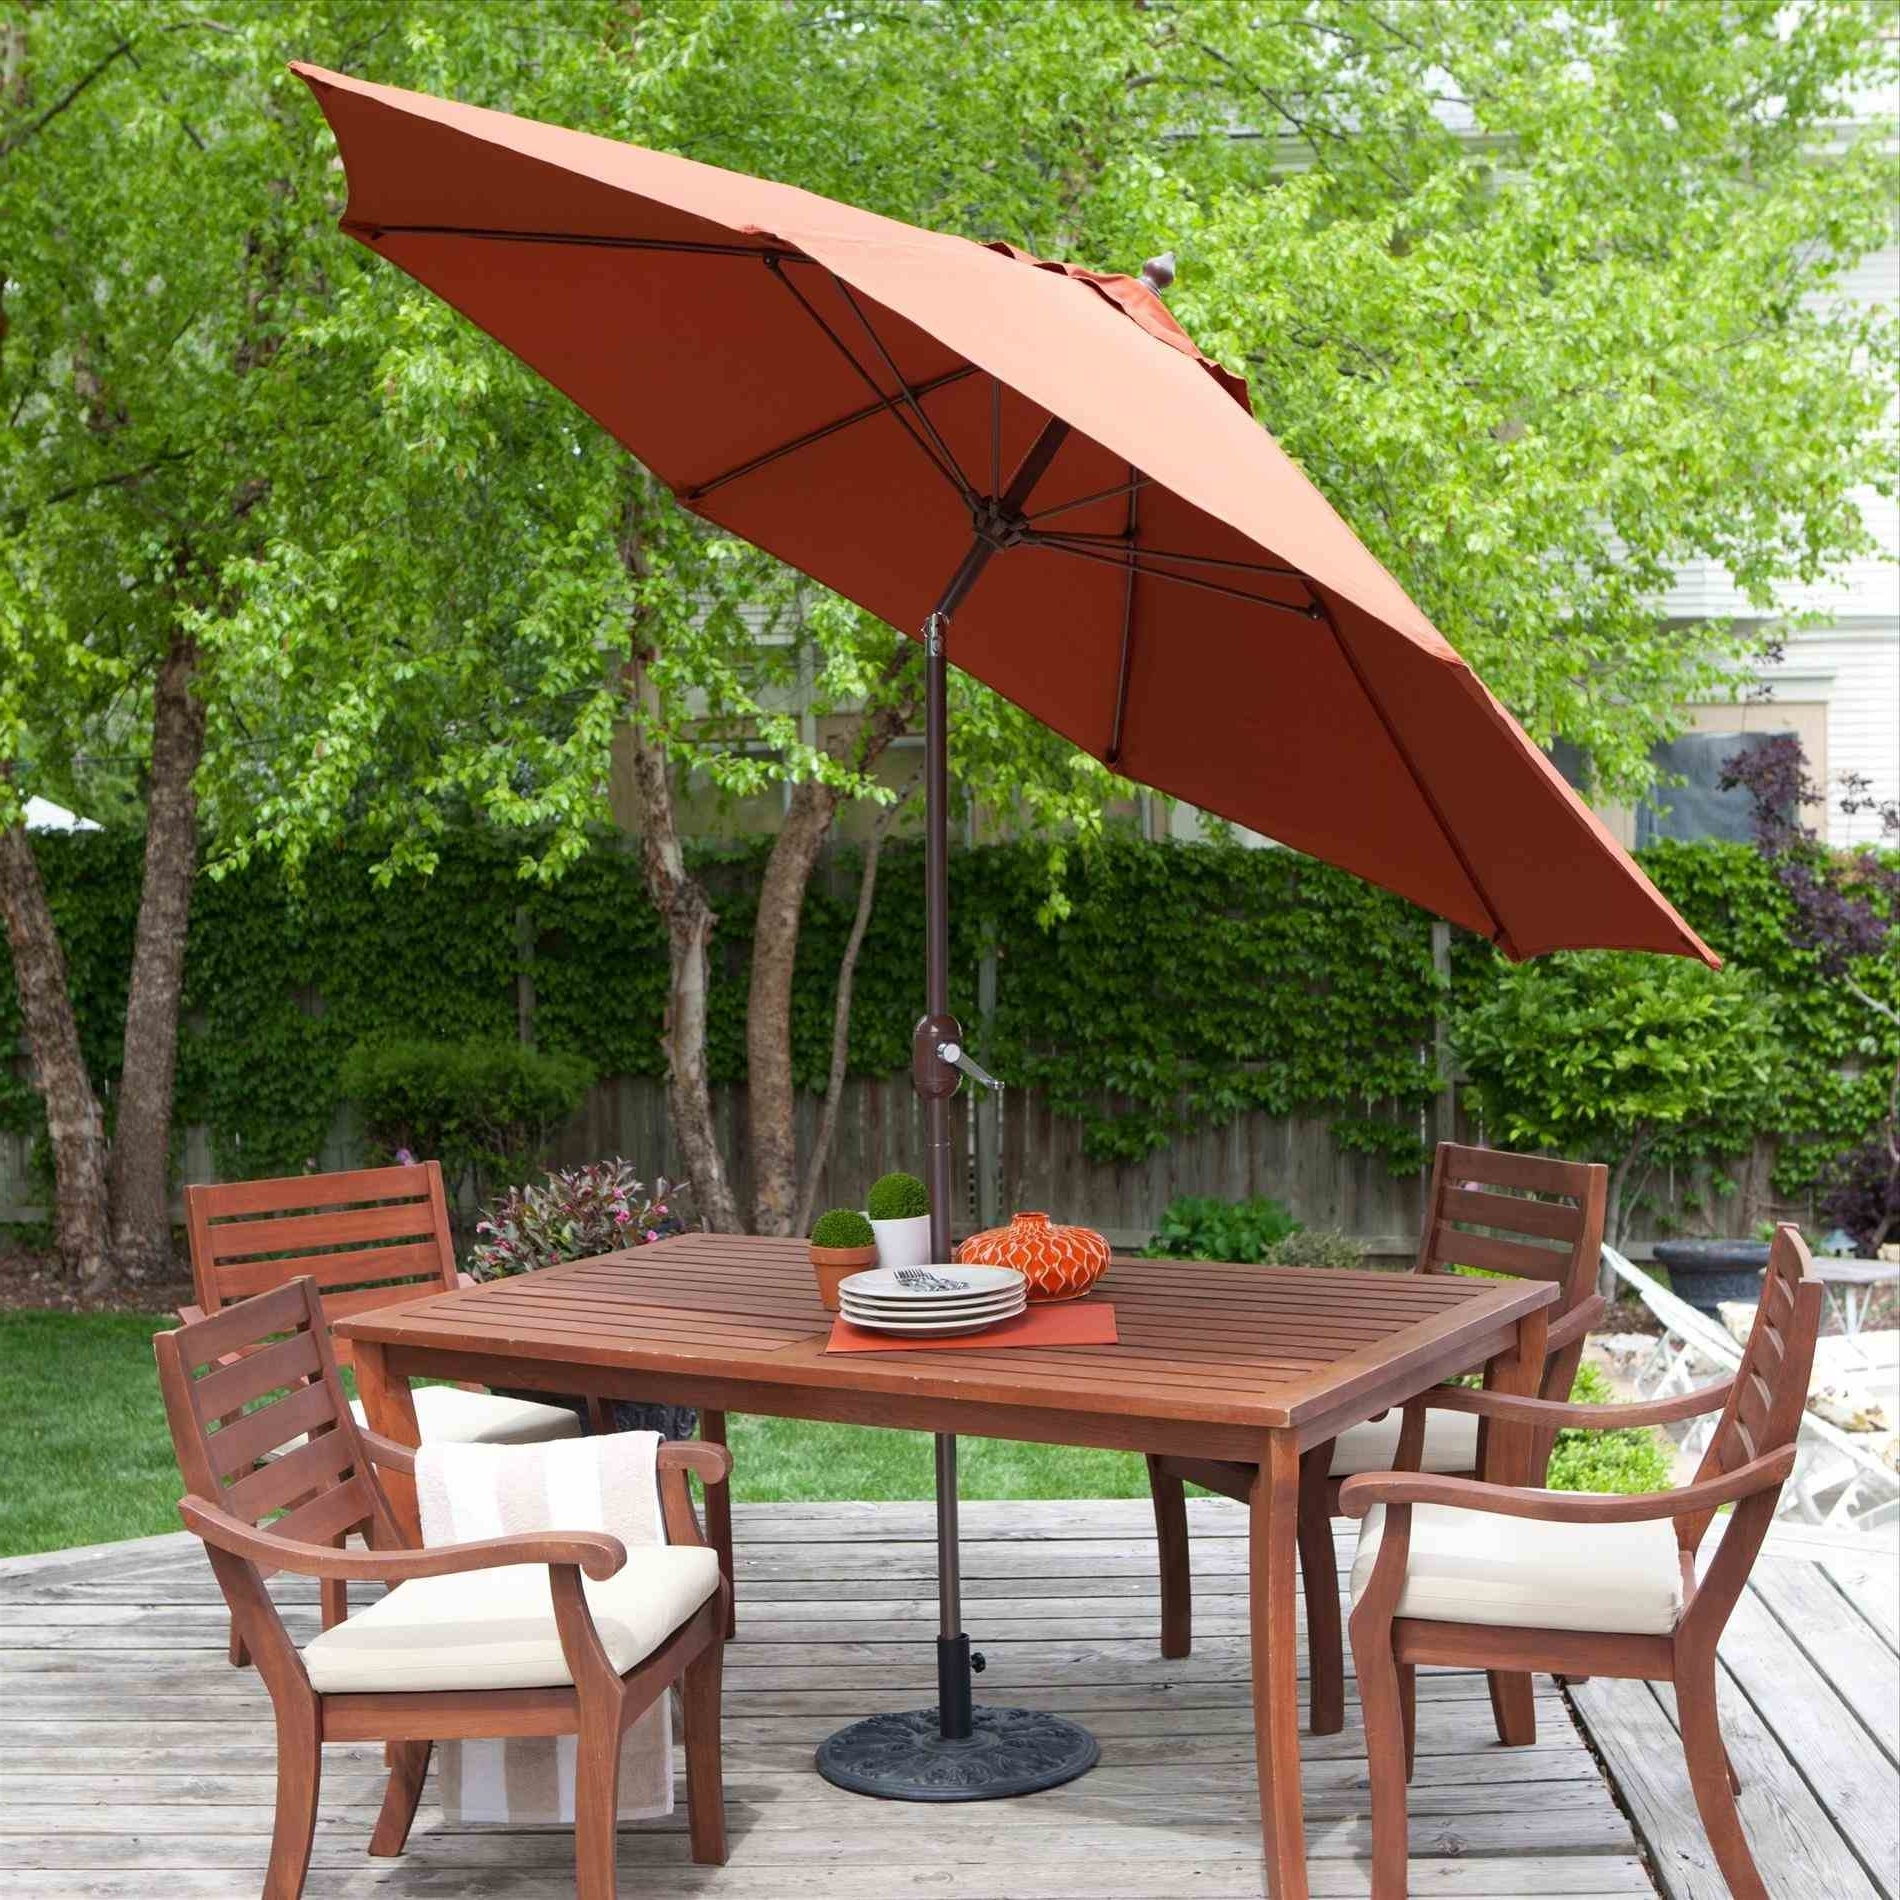 Small Patio Umbrellas Regarding Well Known Small Patio Umbrella Part 2 Outdoor Umbrellas – Theestatesga (View 6 of 20)